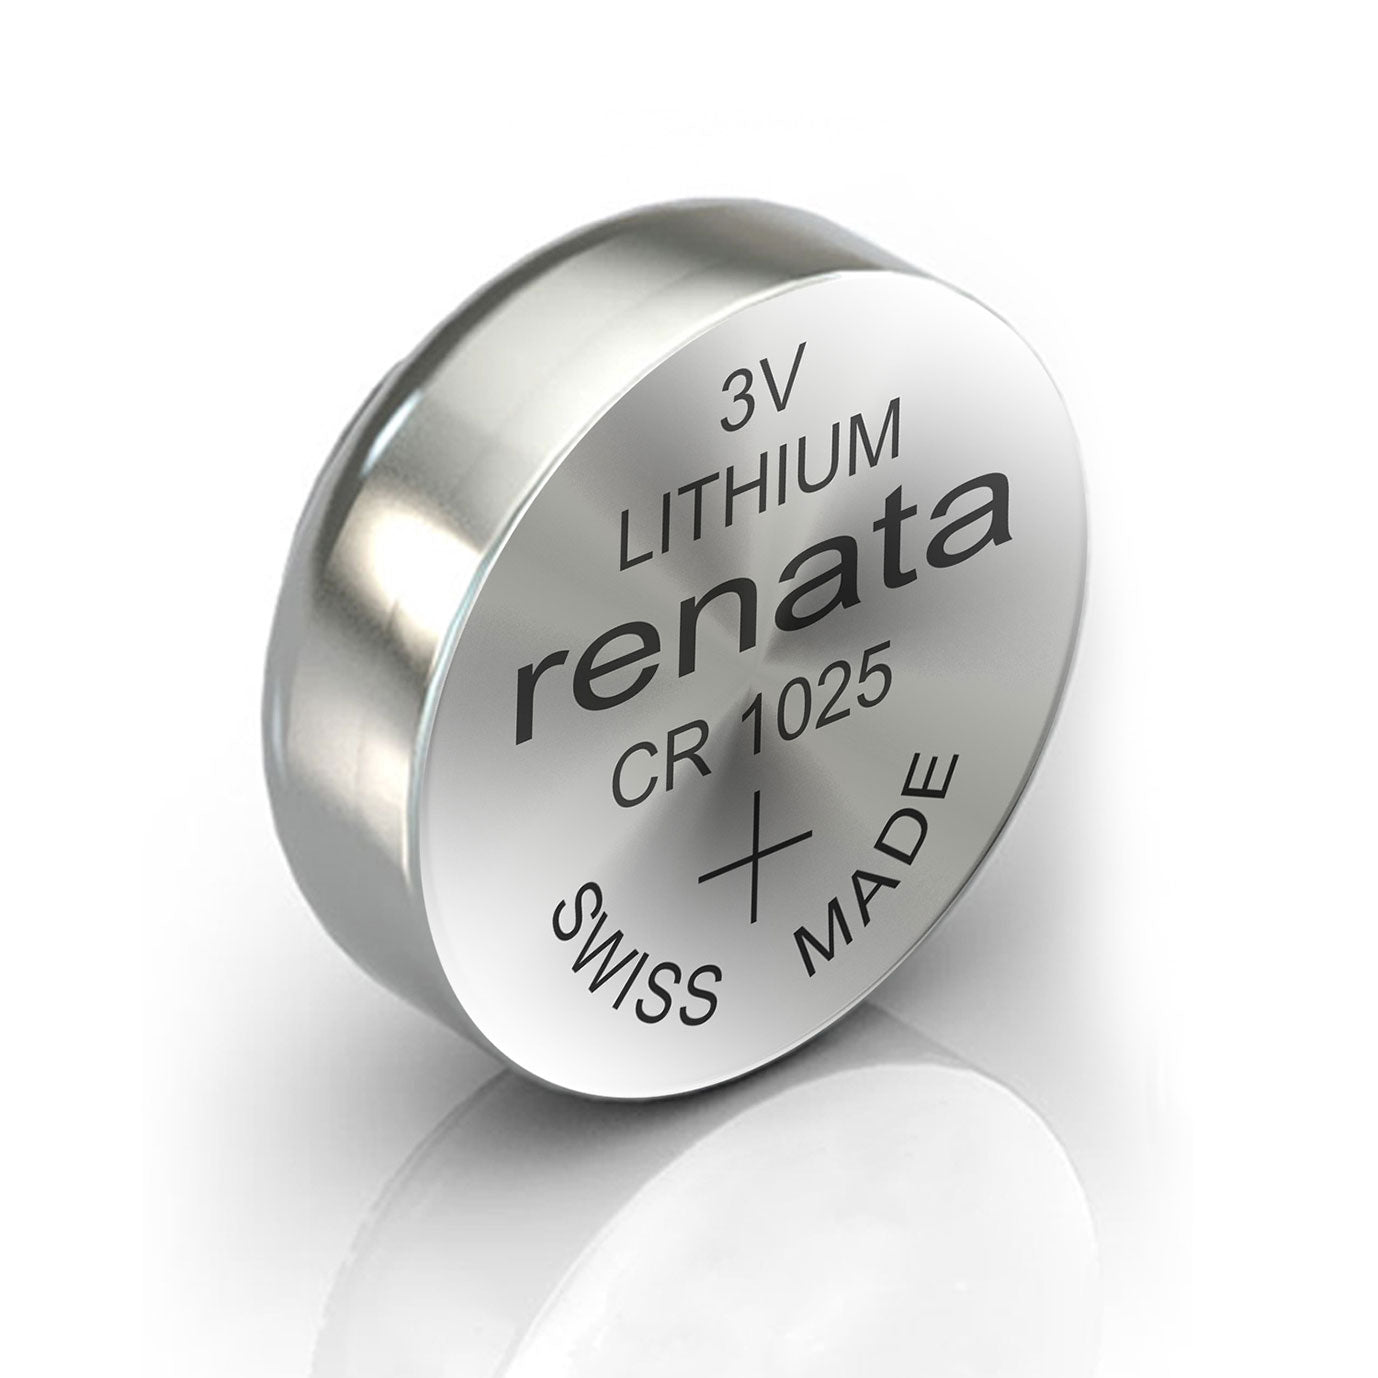 2x Renata CR1025 Watch Battery 3V Swiss Made Lithium Button Coin Cell by  TradeNRG